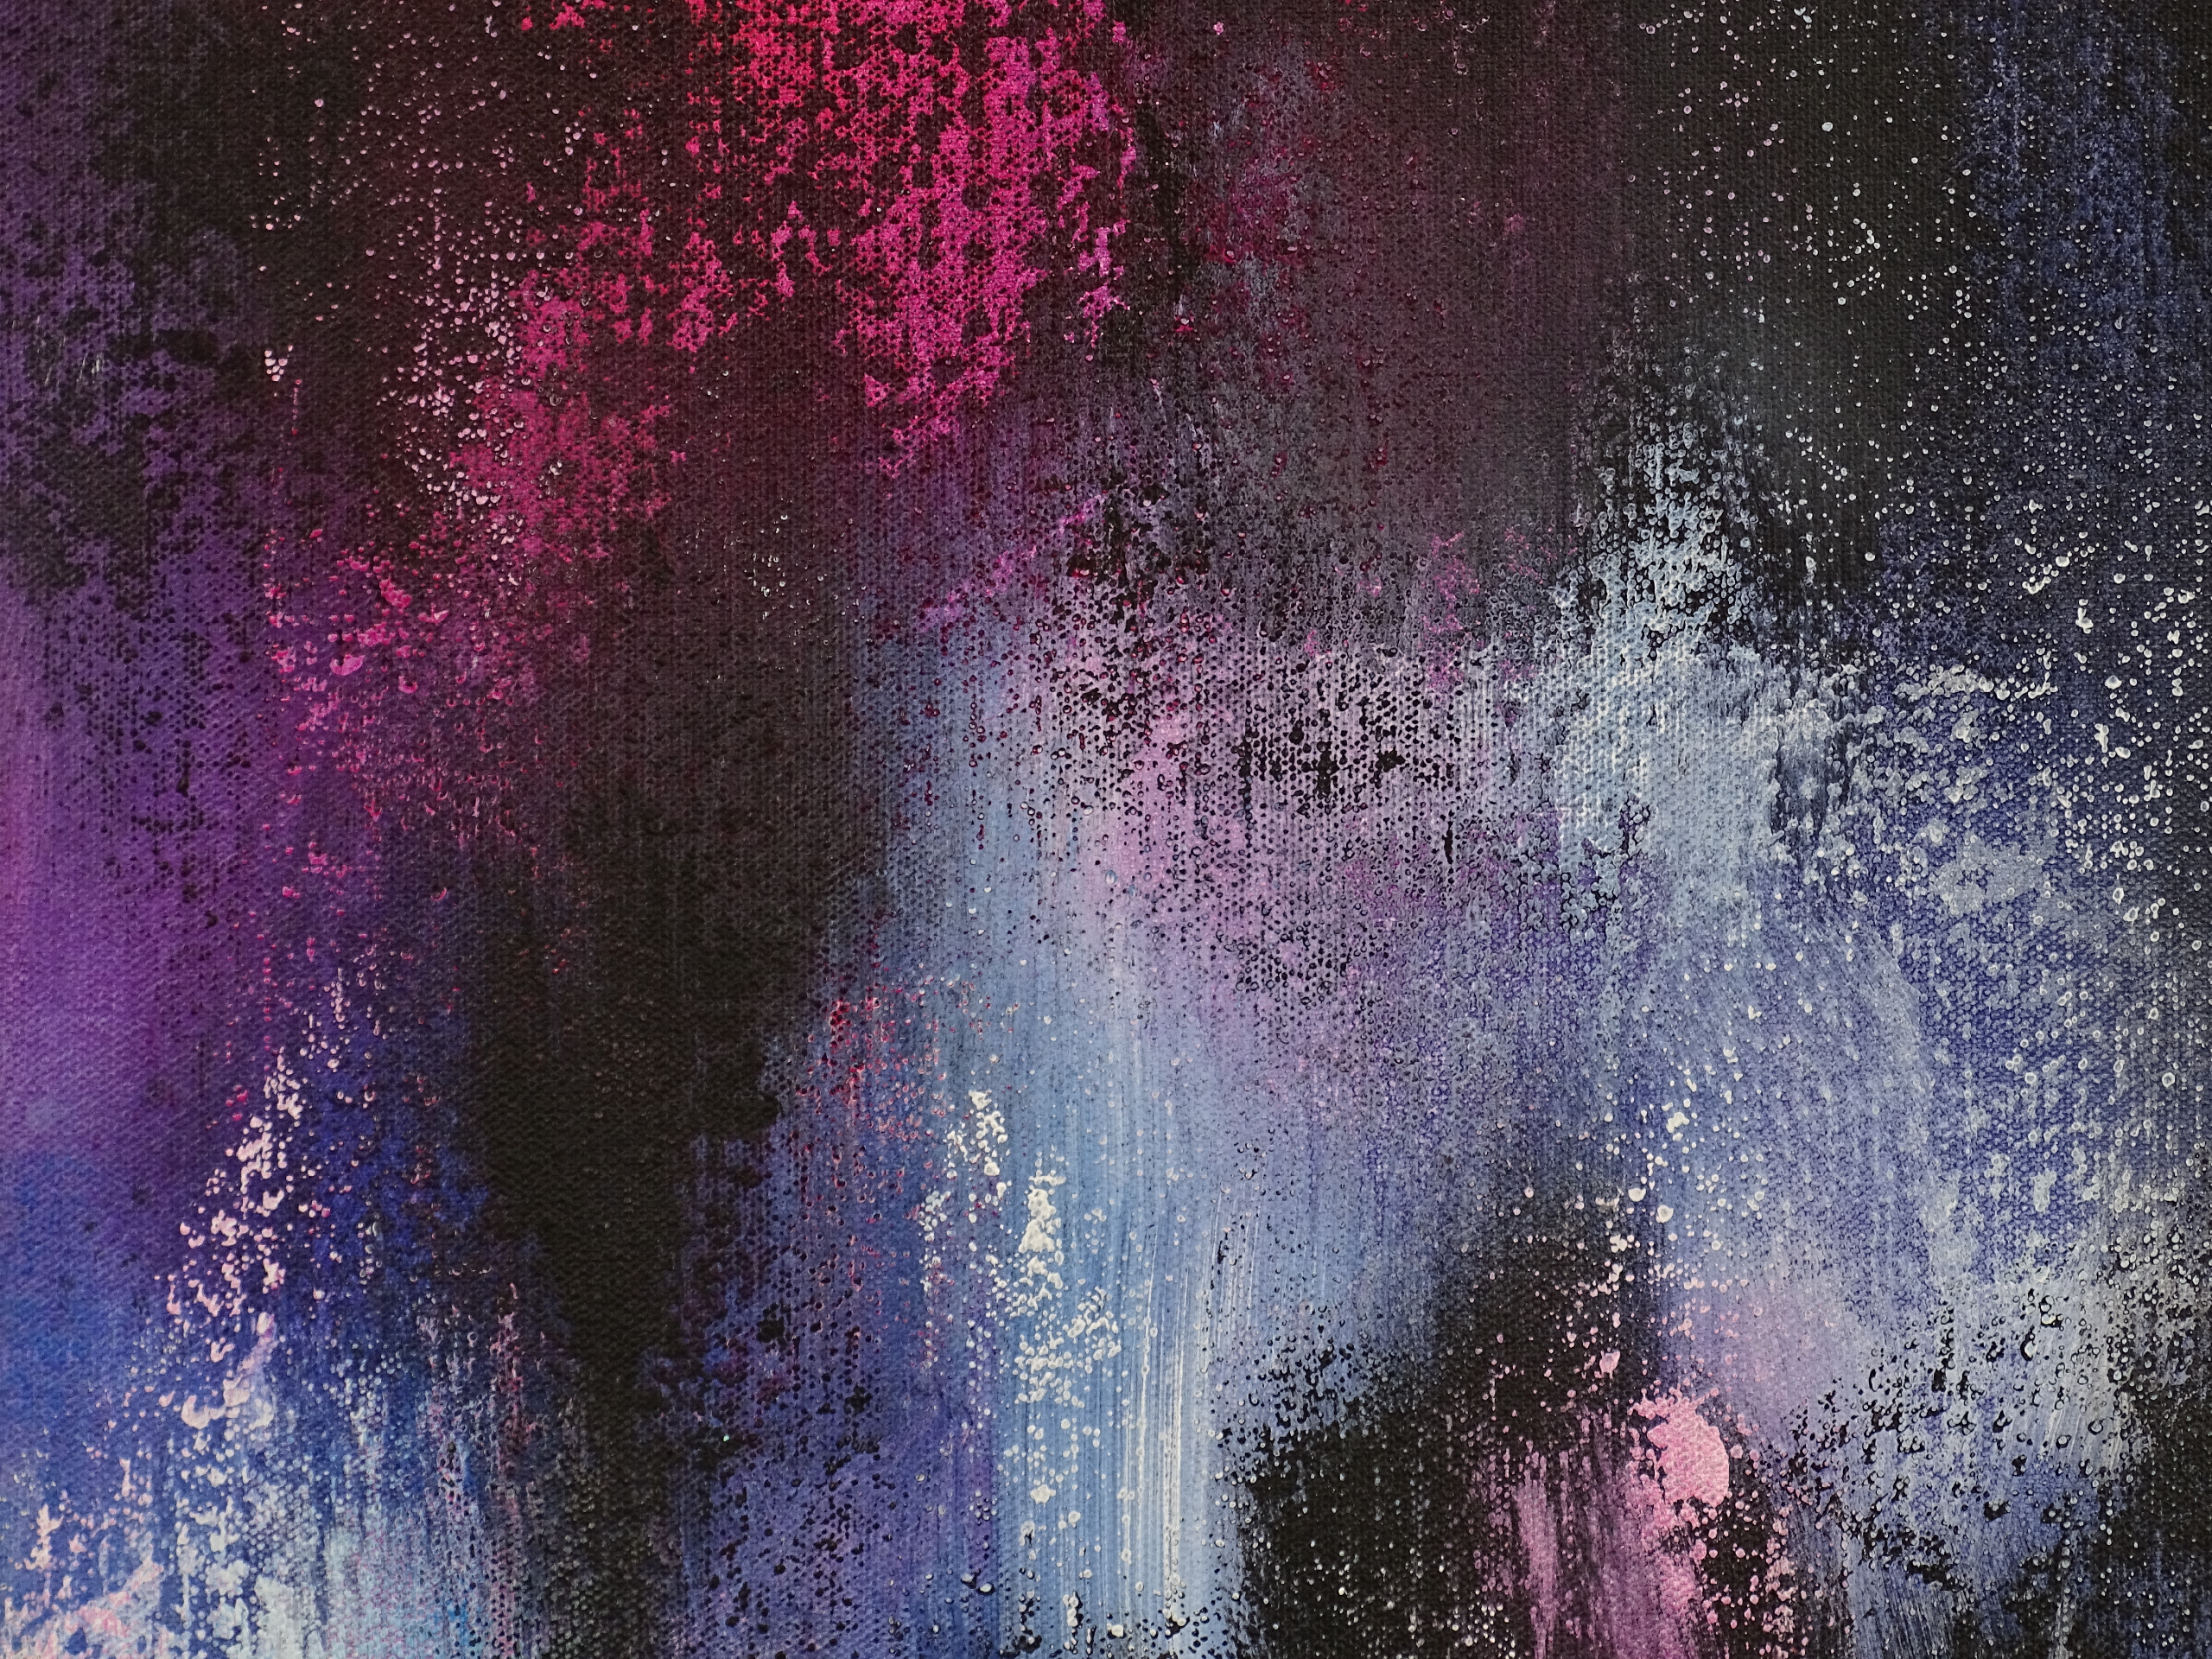 Dark Abstract Painting - Gone But Not Forgotten